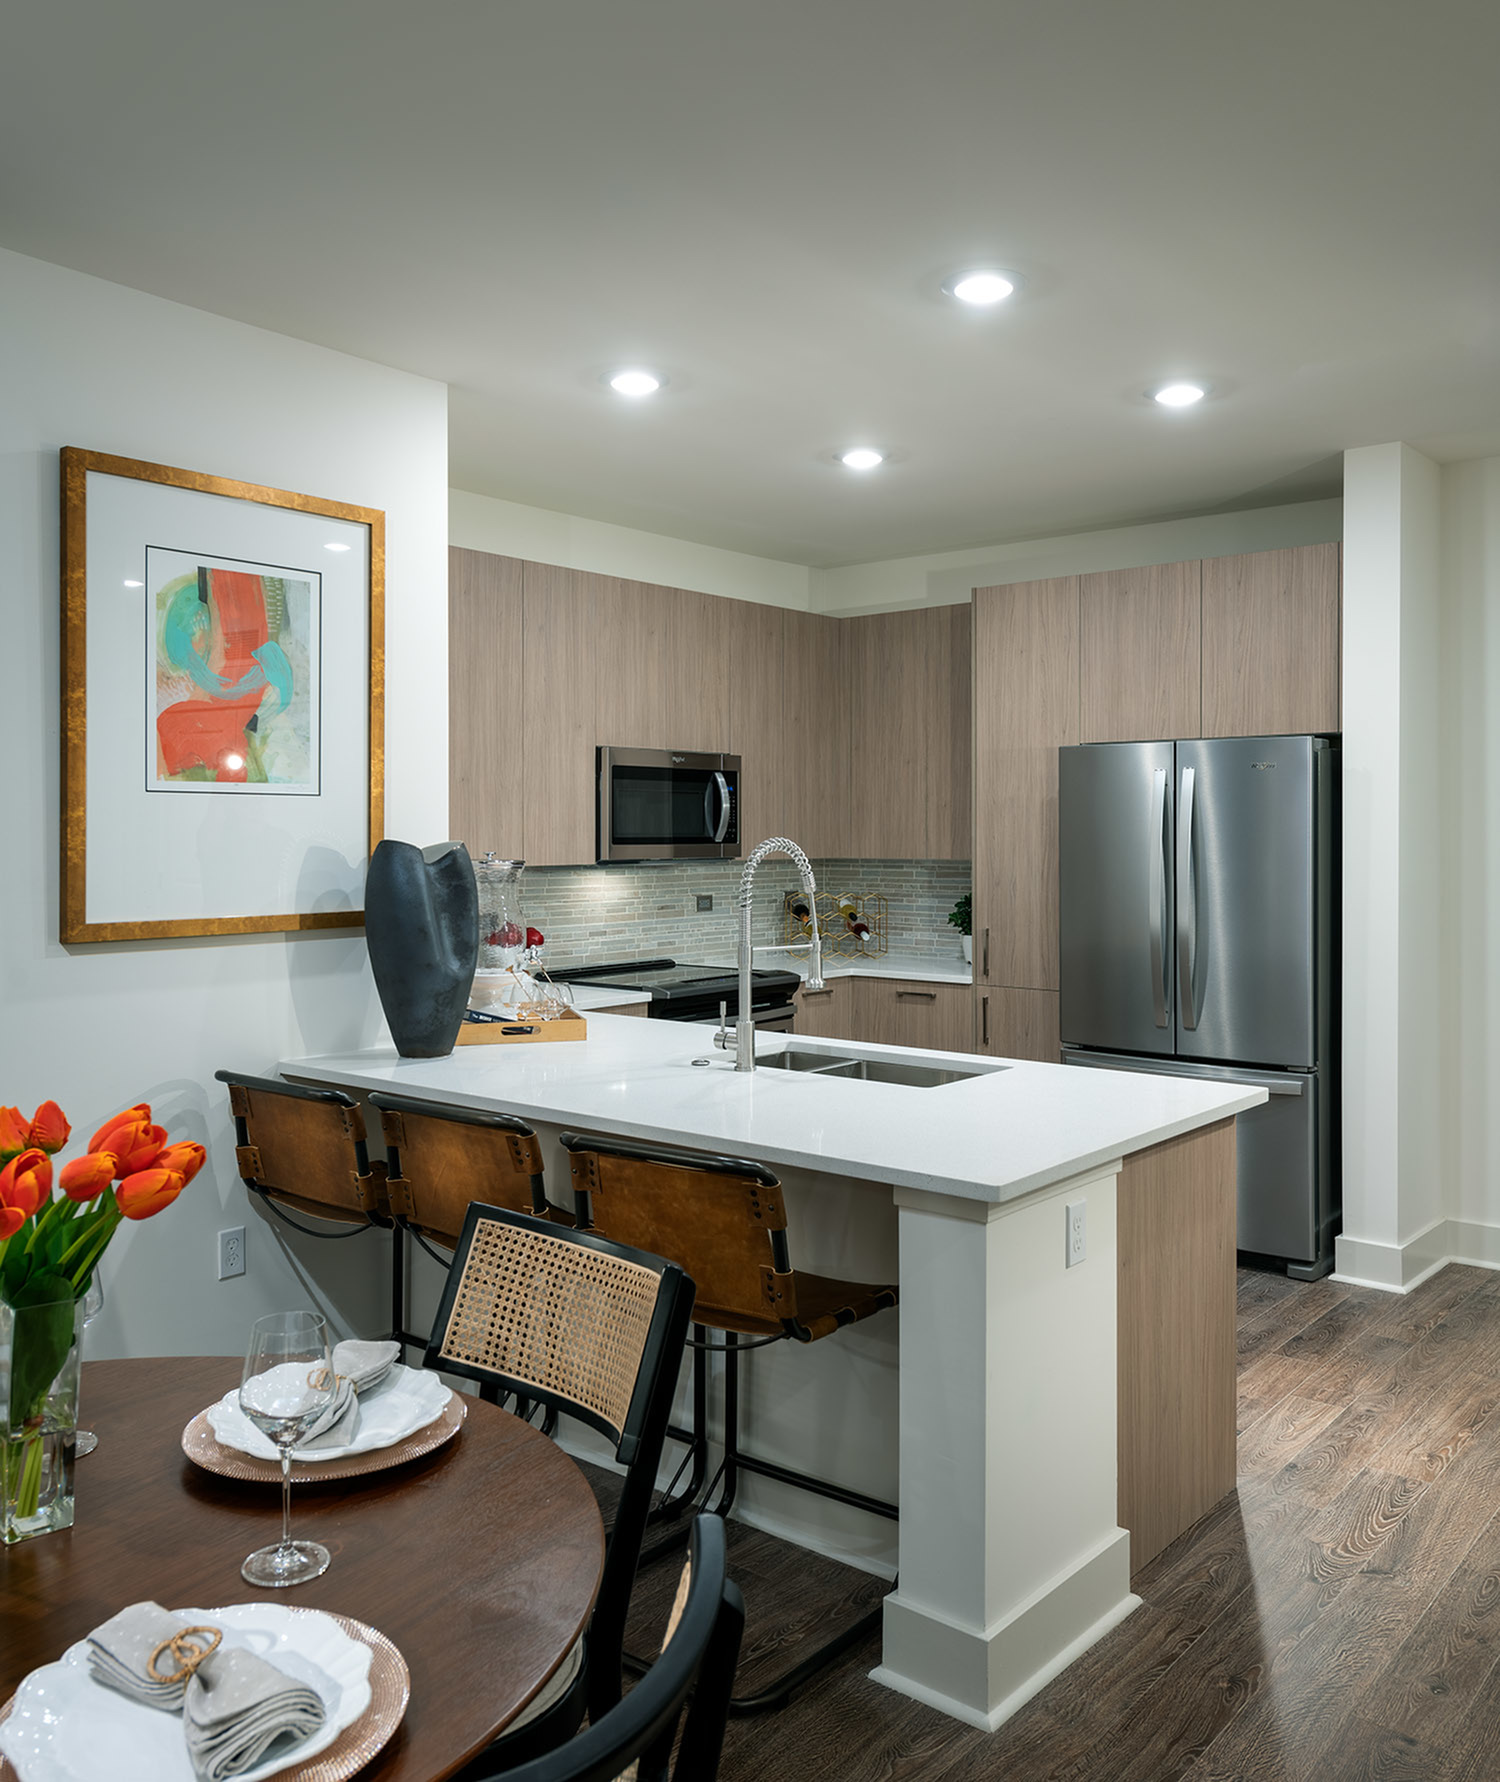 Town Centre Apartment Homes: Luxury Apartments In The Village At Valley Forge, PA